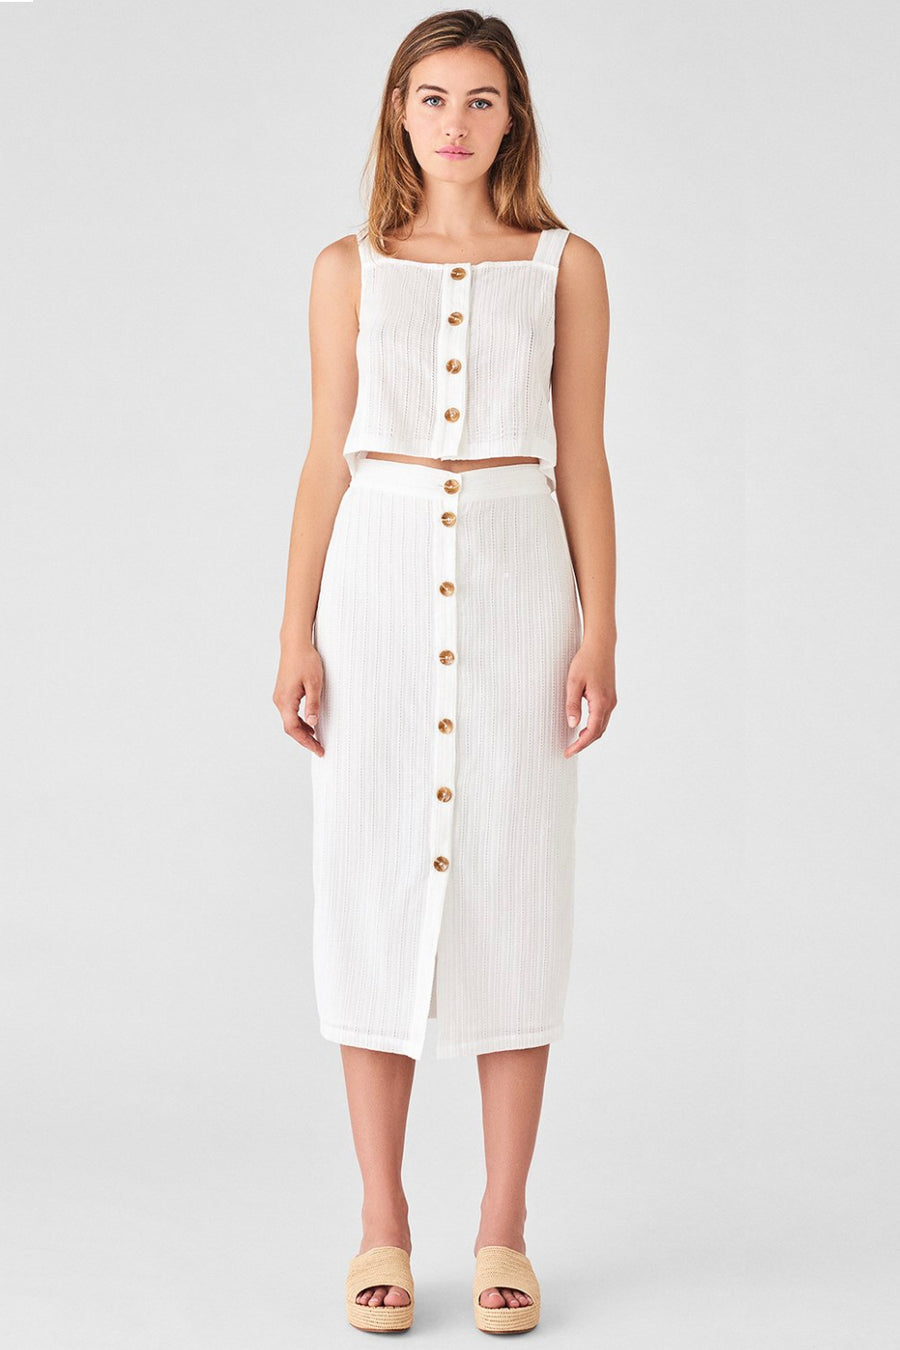 High Street Skirt - White Eyelet - Pavilion